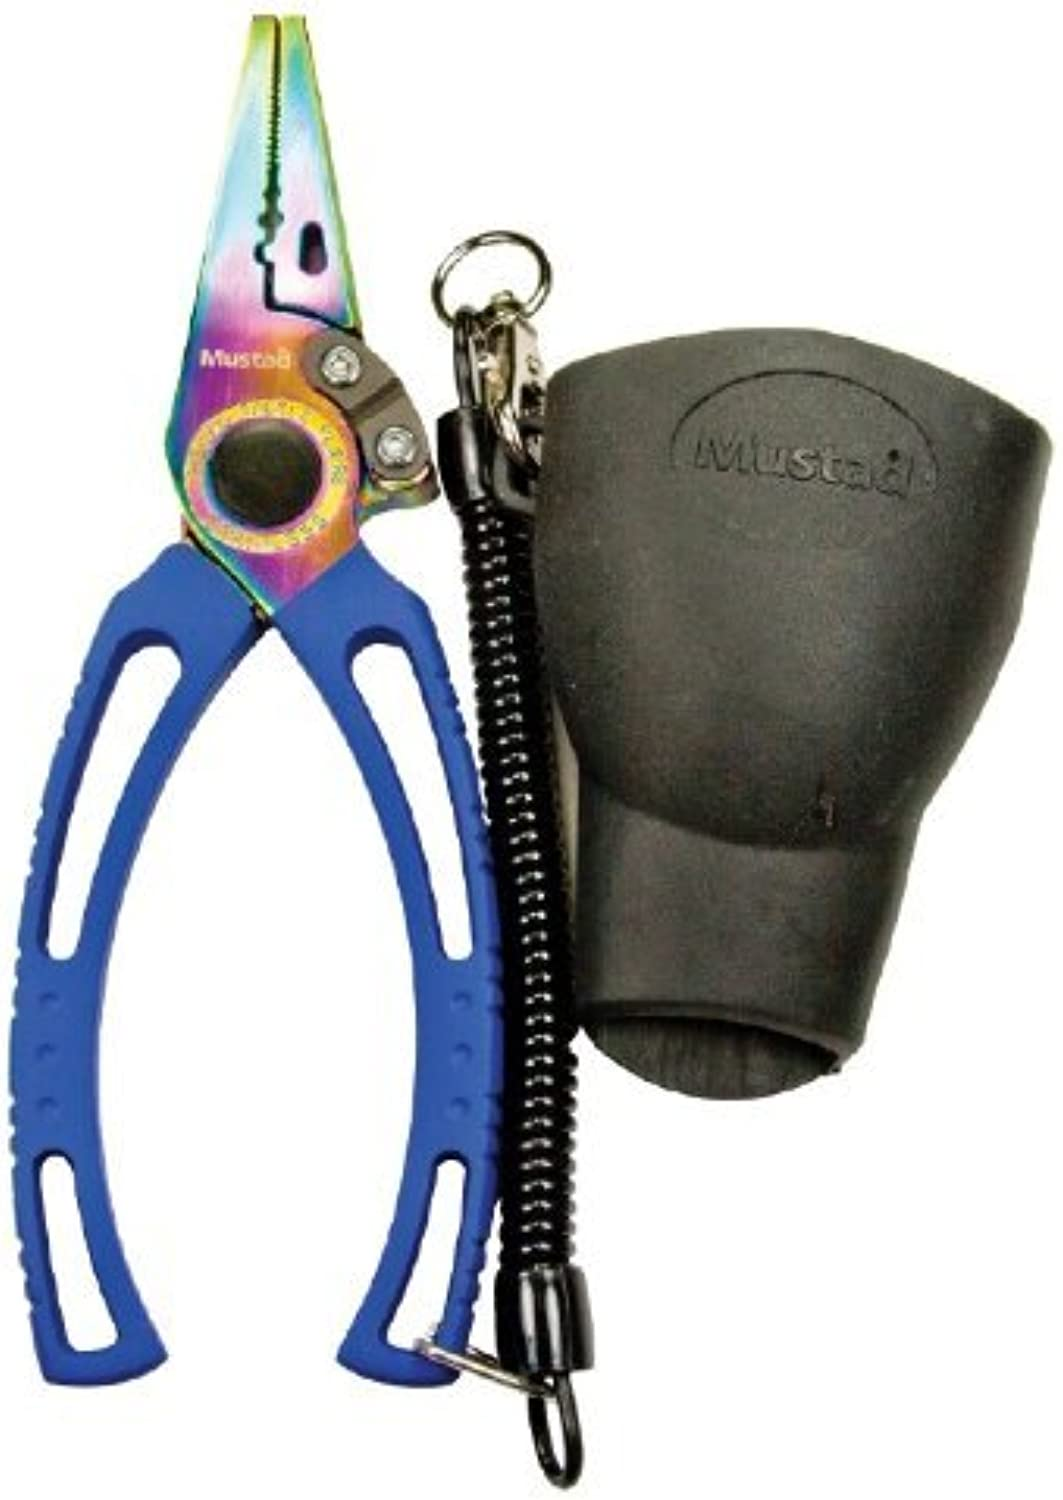 Mustad 7.5Inch SS Pliers with Rainbow Titanium Coating with Sheath, Silver by Mustad